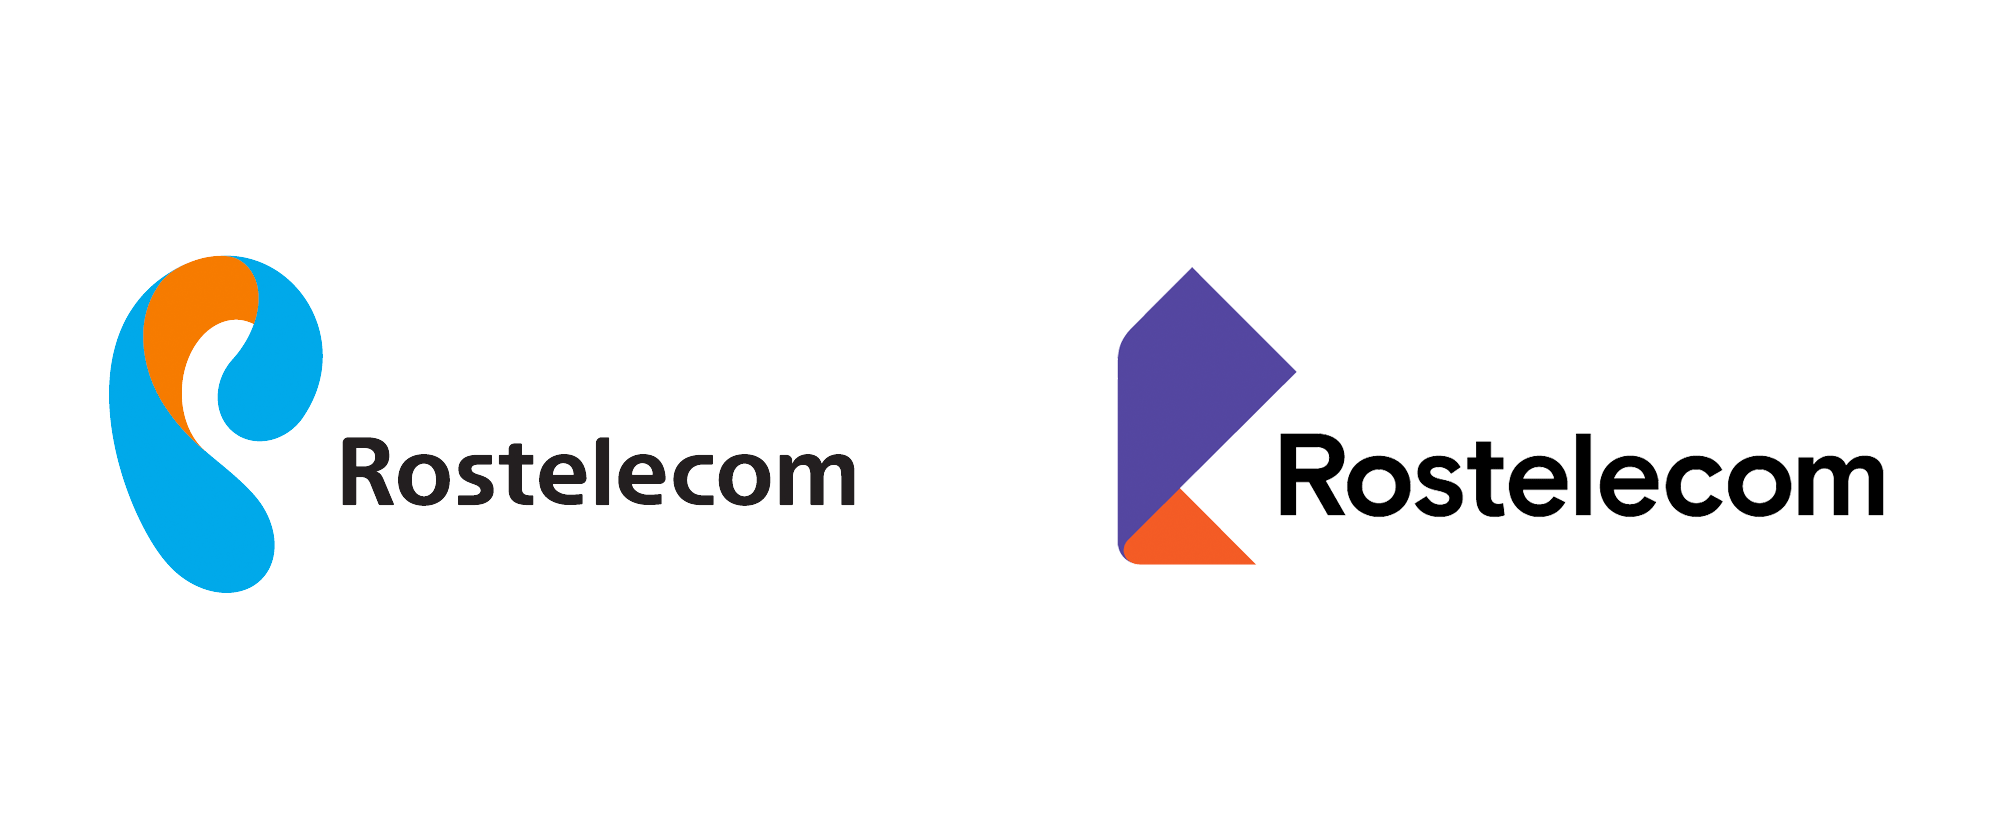 New Logo and Identity for Rostelecom by Saffron